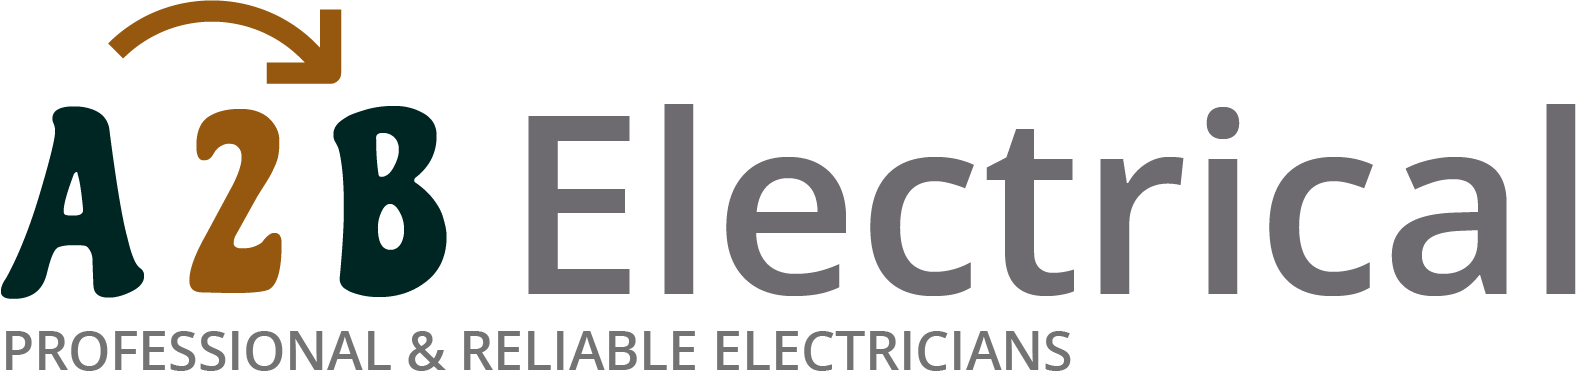 If you have electrical wiring problems in Ickenham, we can provide an electrician to have a look for you.